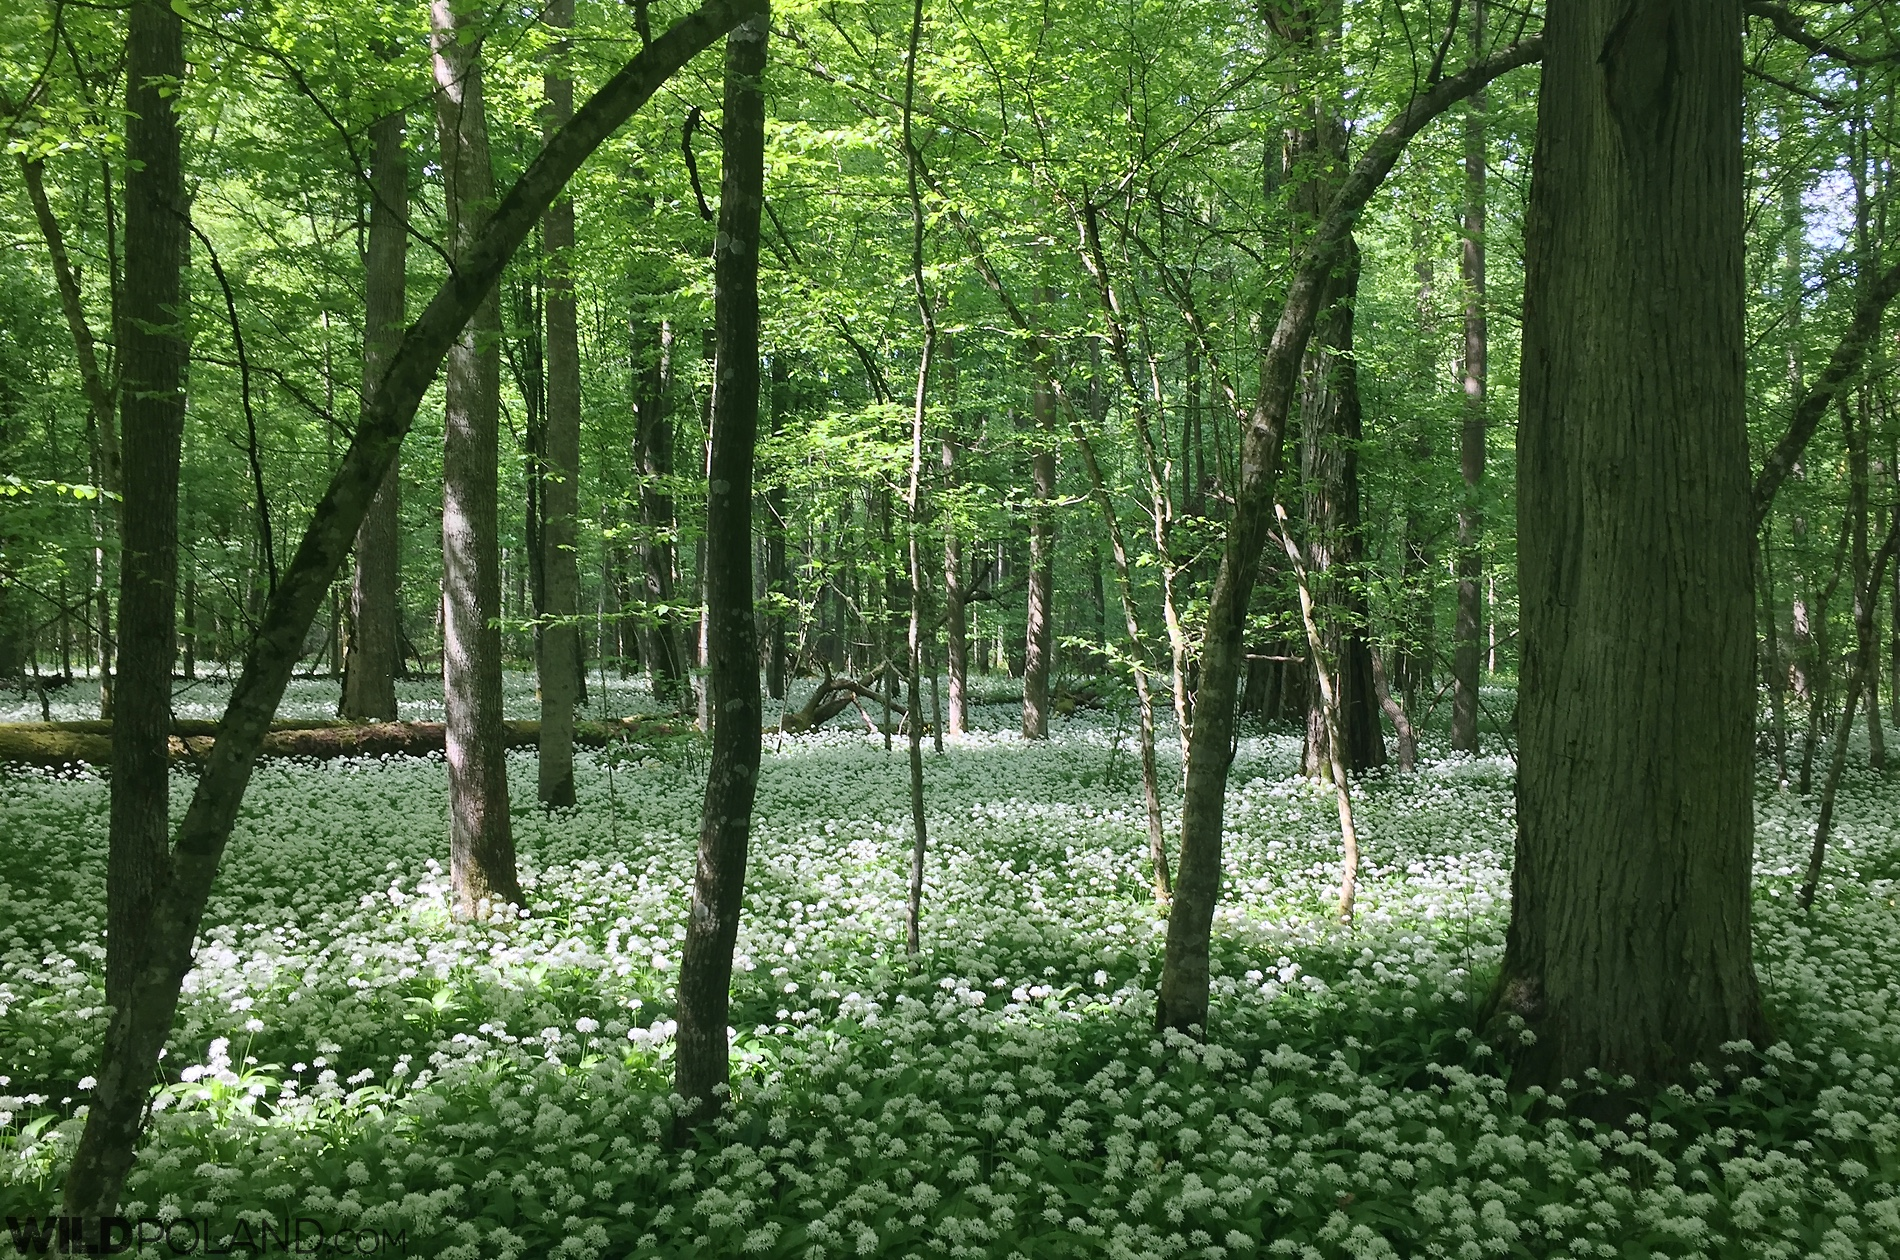 Ramson (wild garlic) growing in the Białowieża National Park